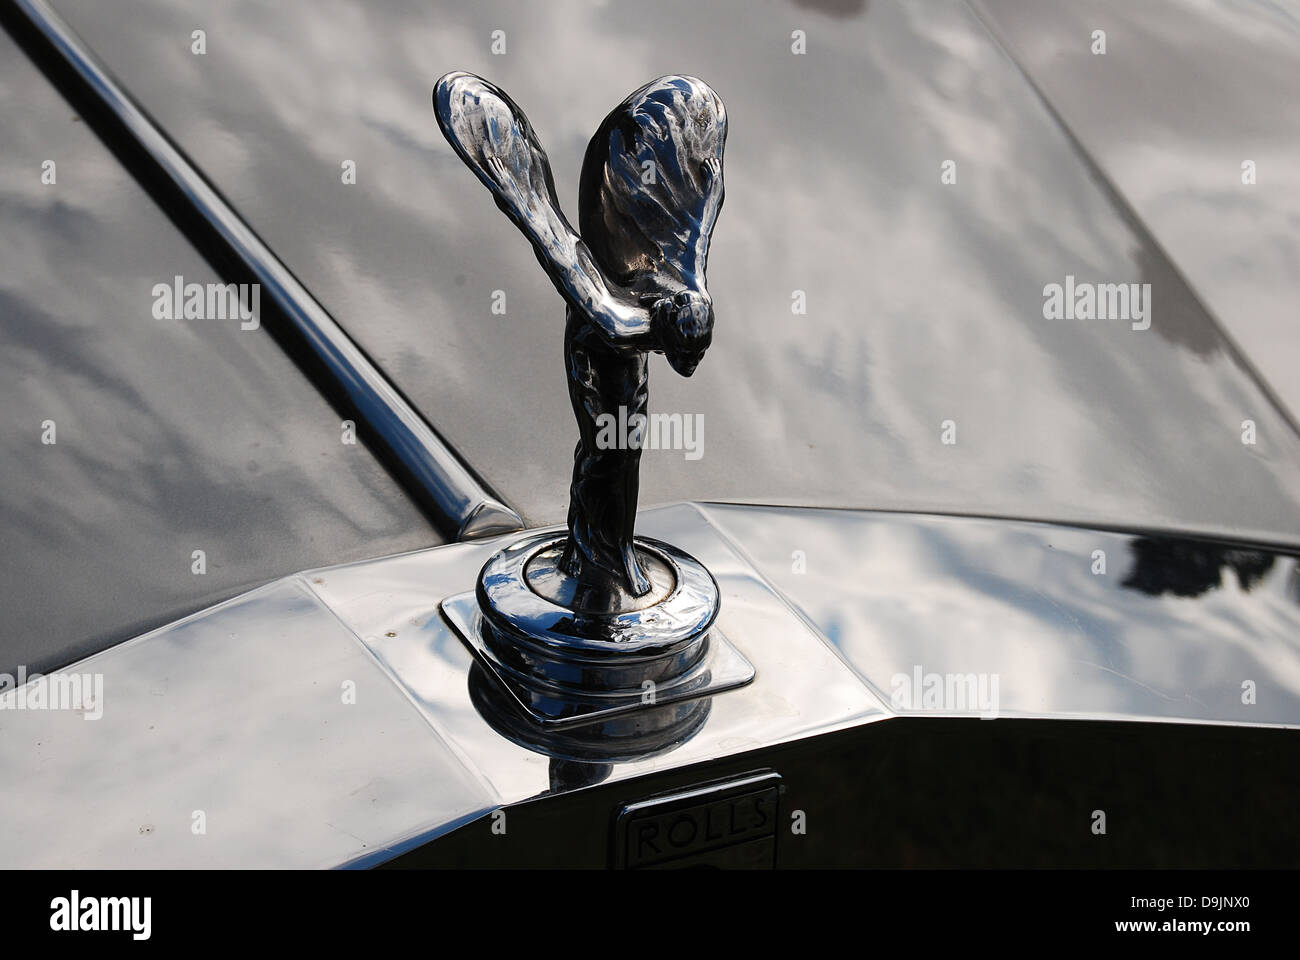 Rolls Royce Emblem On The Front Of The Classic Car Stock Photo